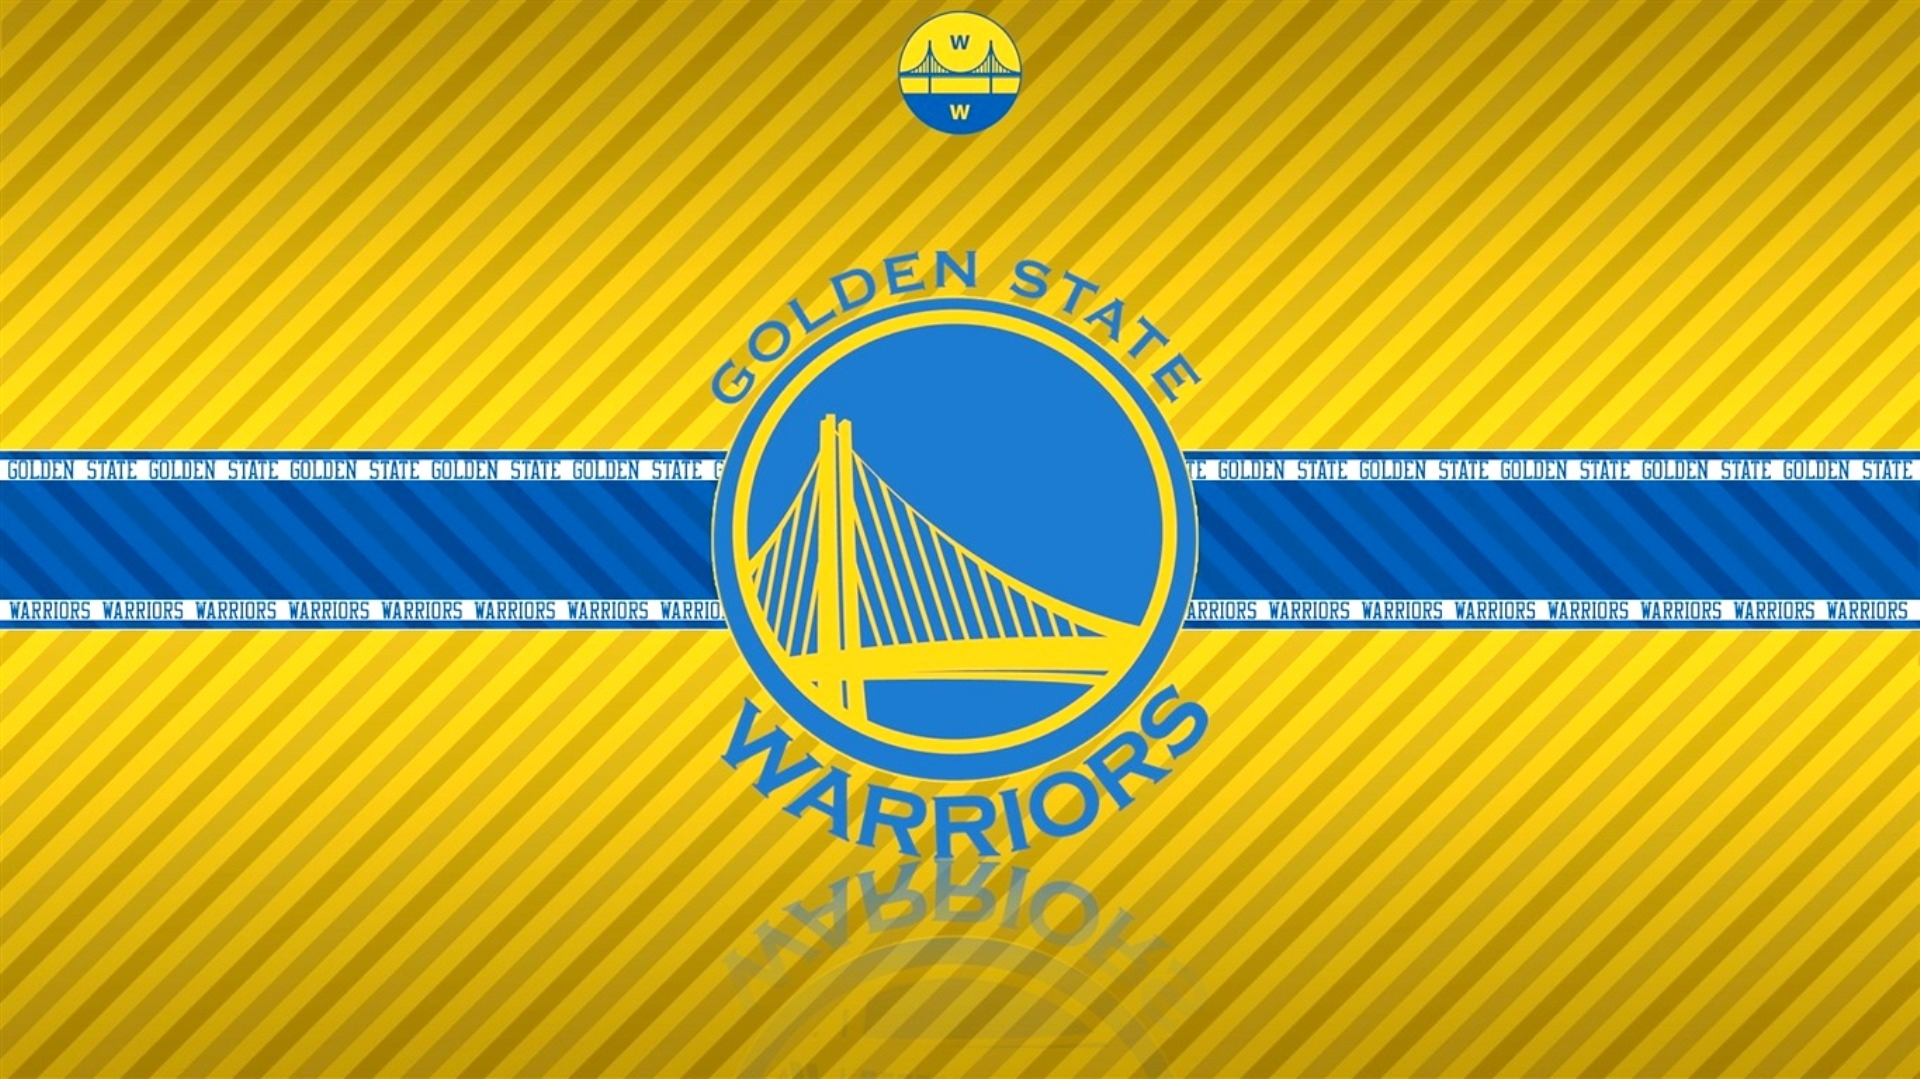 golden-state-warriors-logo-basketball-2016-destop-background